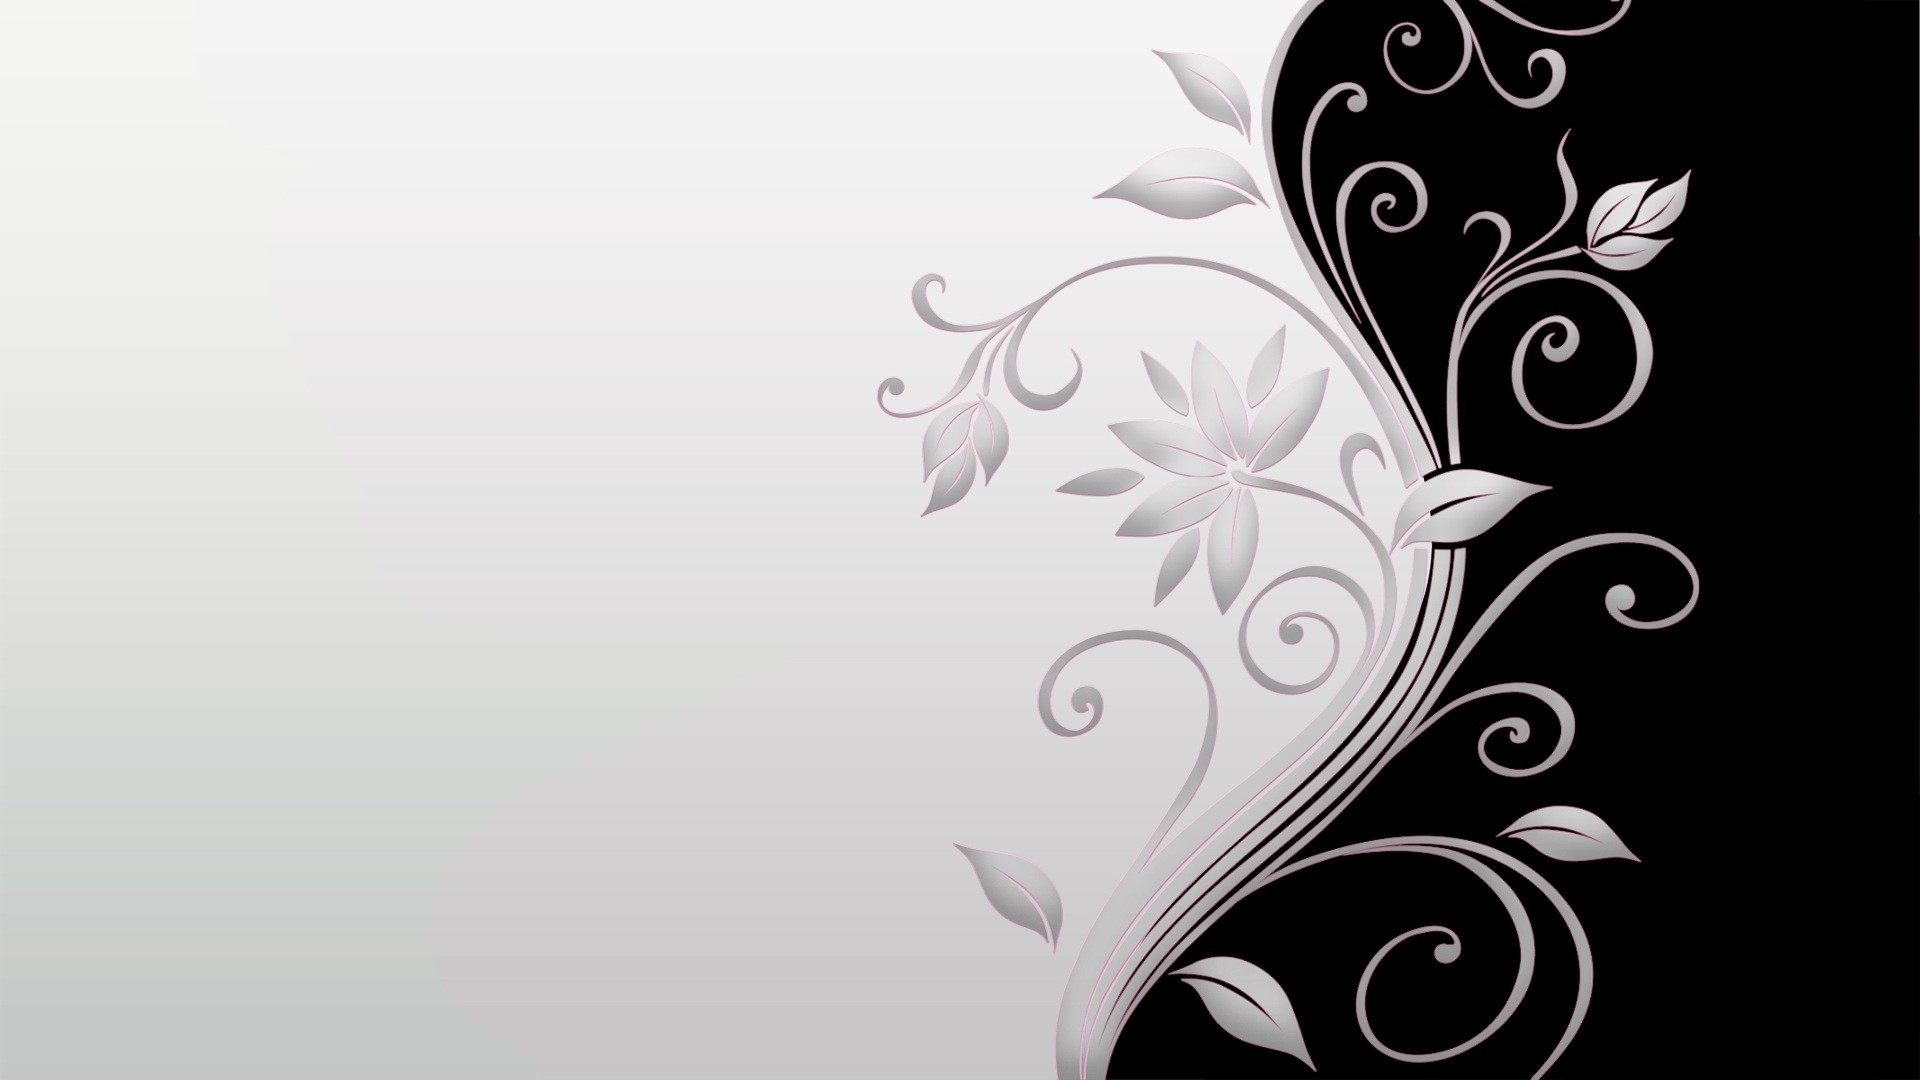 Black and white flower wallpaper 56 images 1920x1080 black and white flower wallpapers wallpapers mightylinksfo